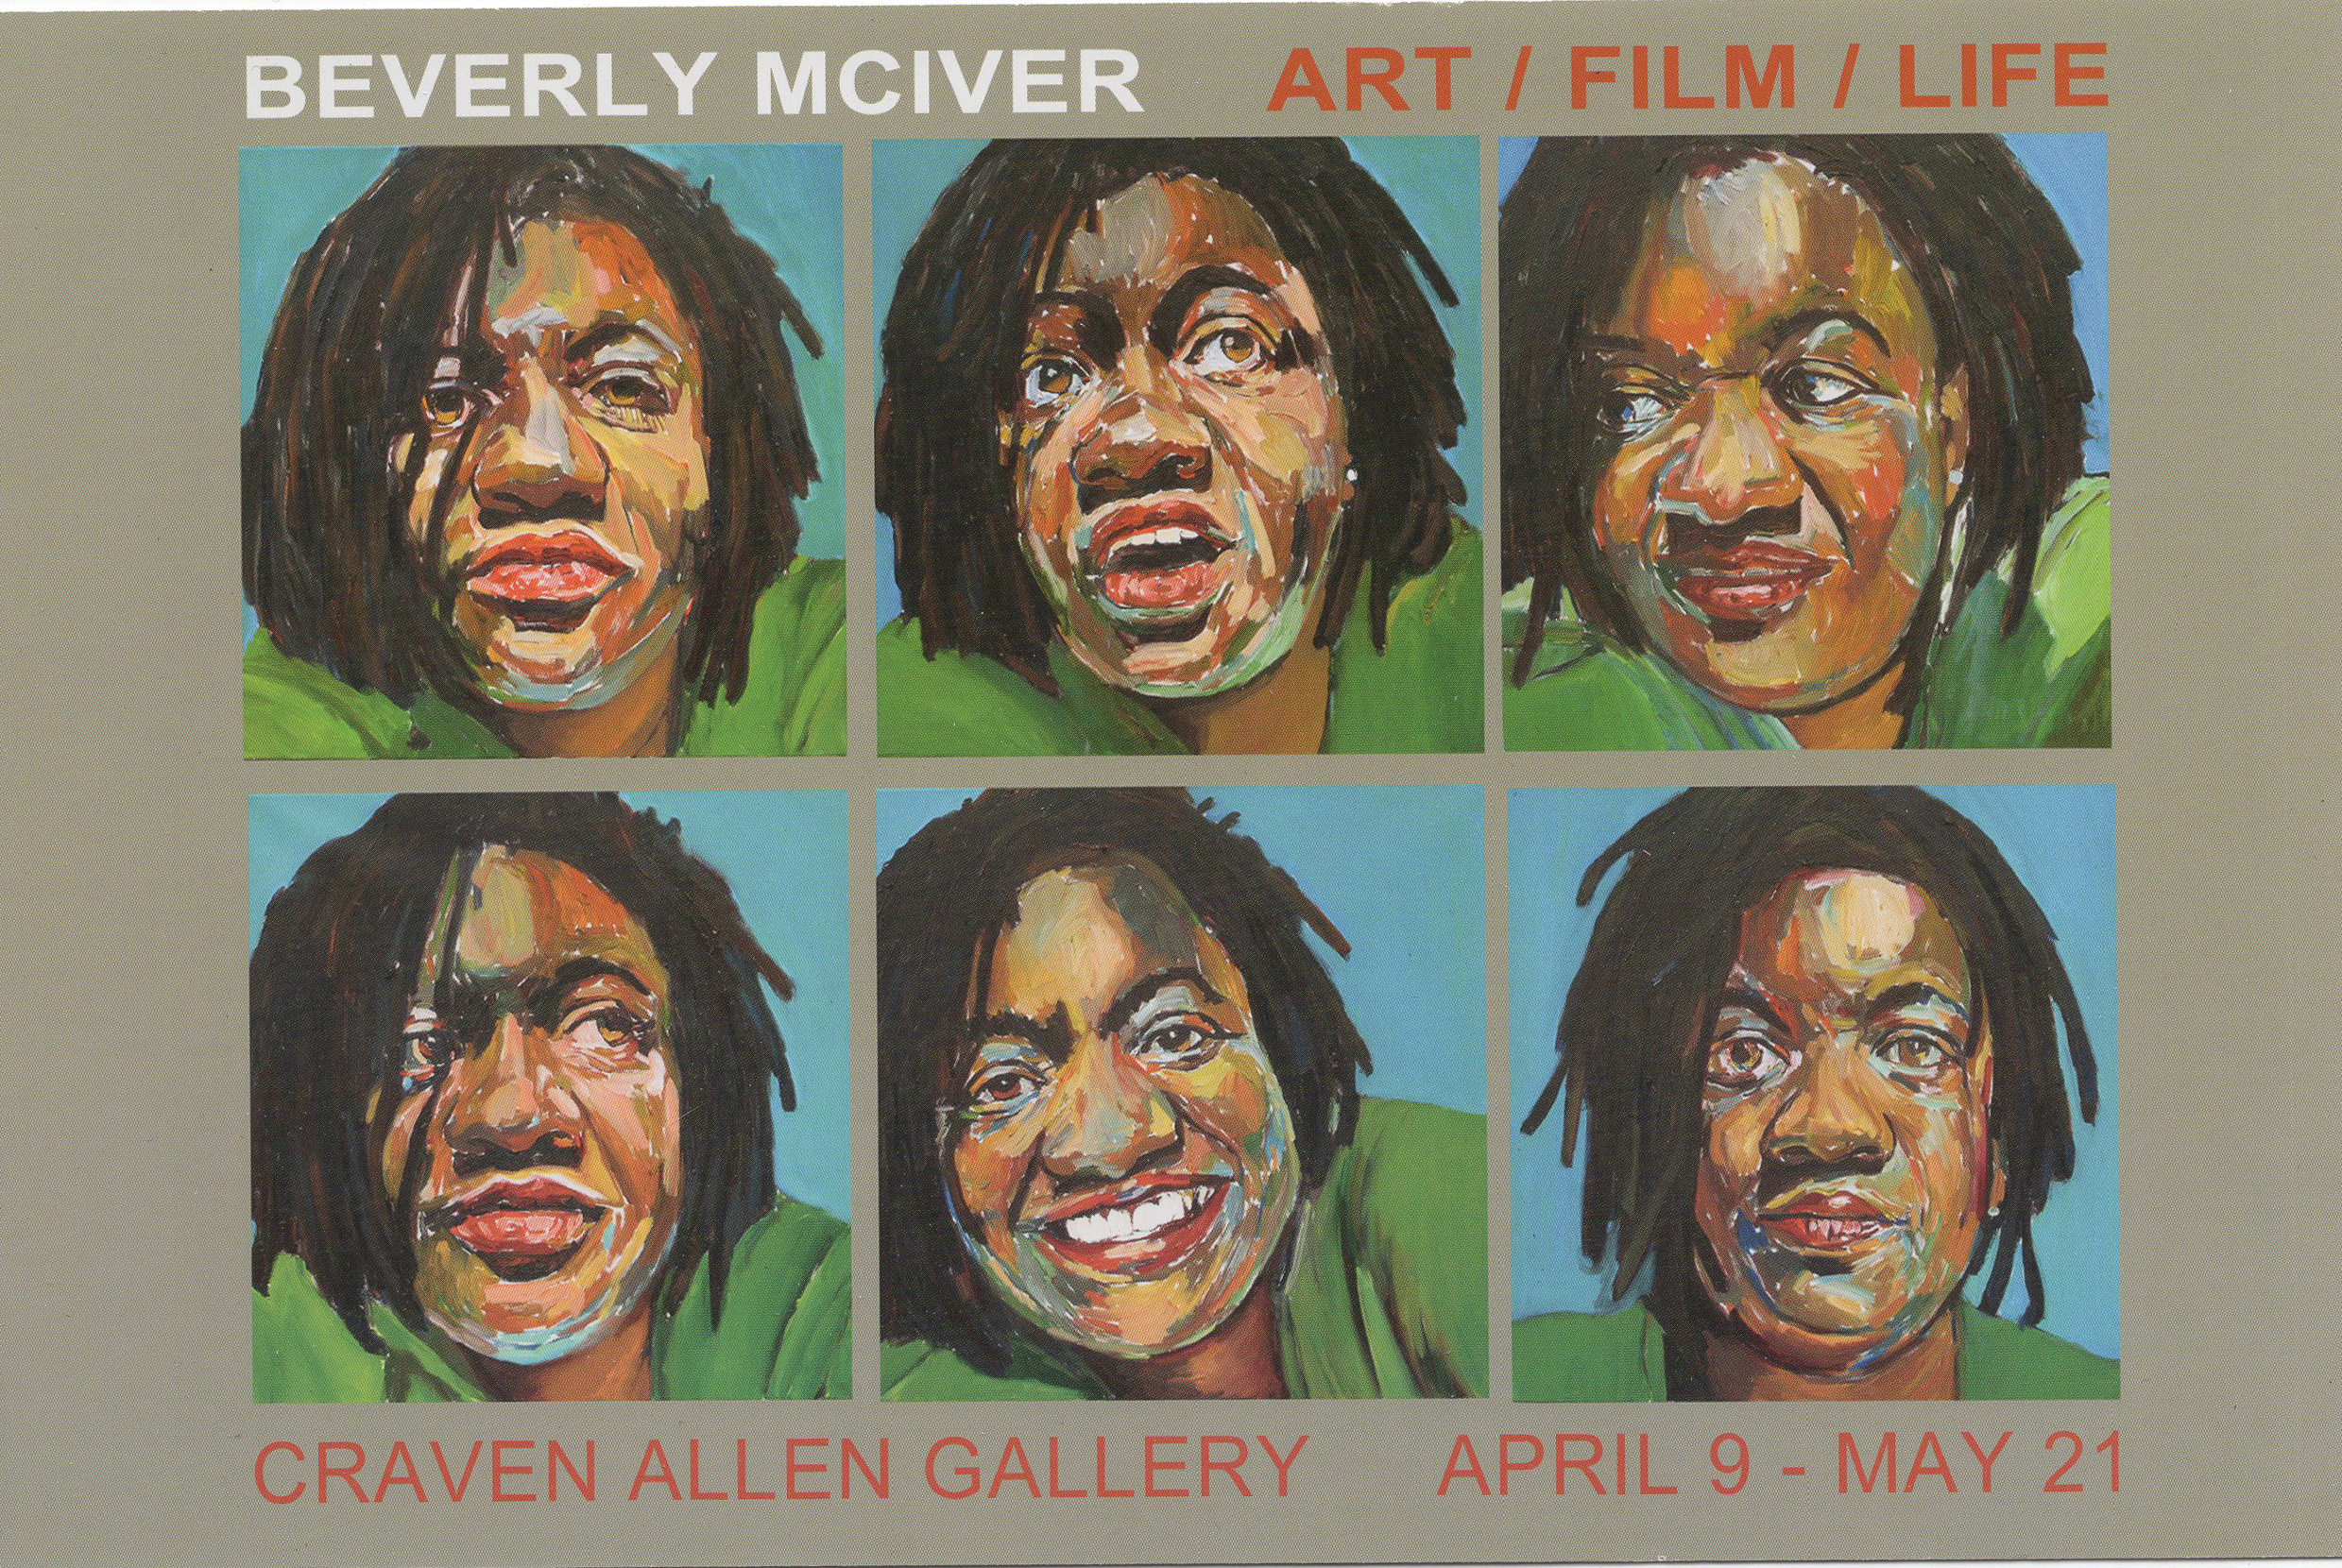 BEVERLY MCIVER: ART/FILM/LIFE